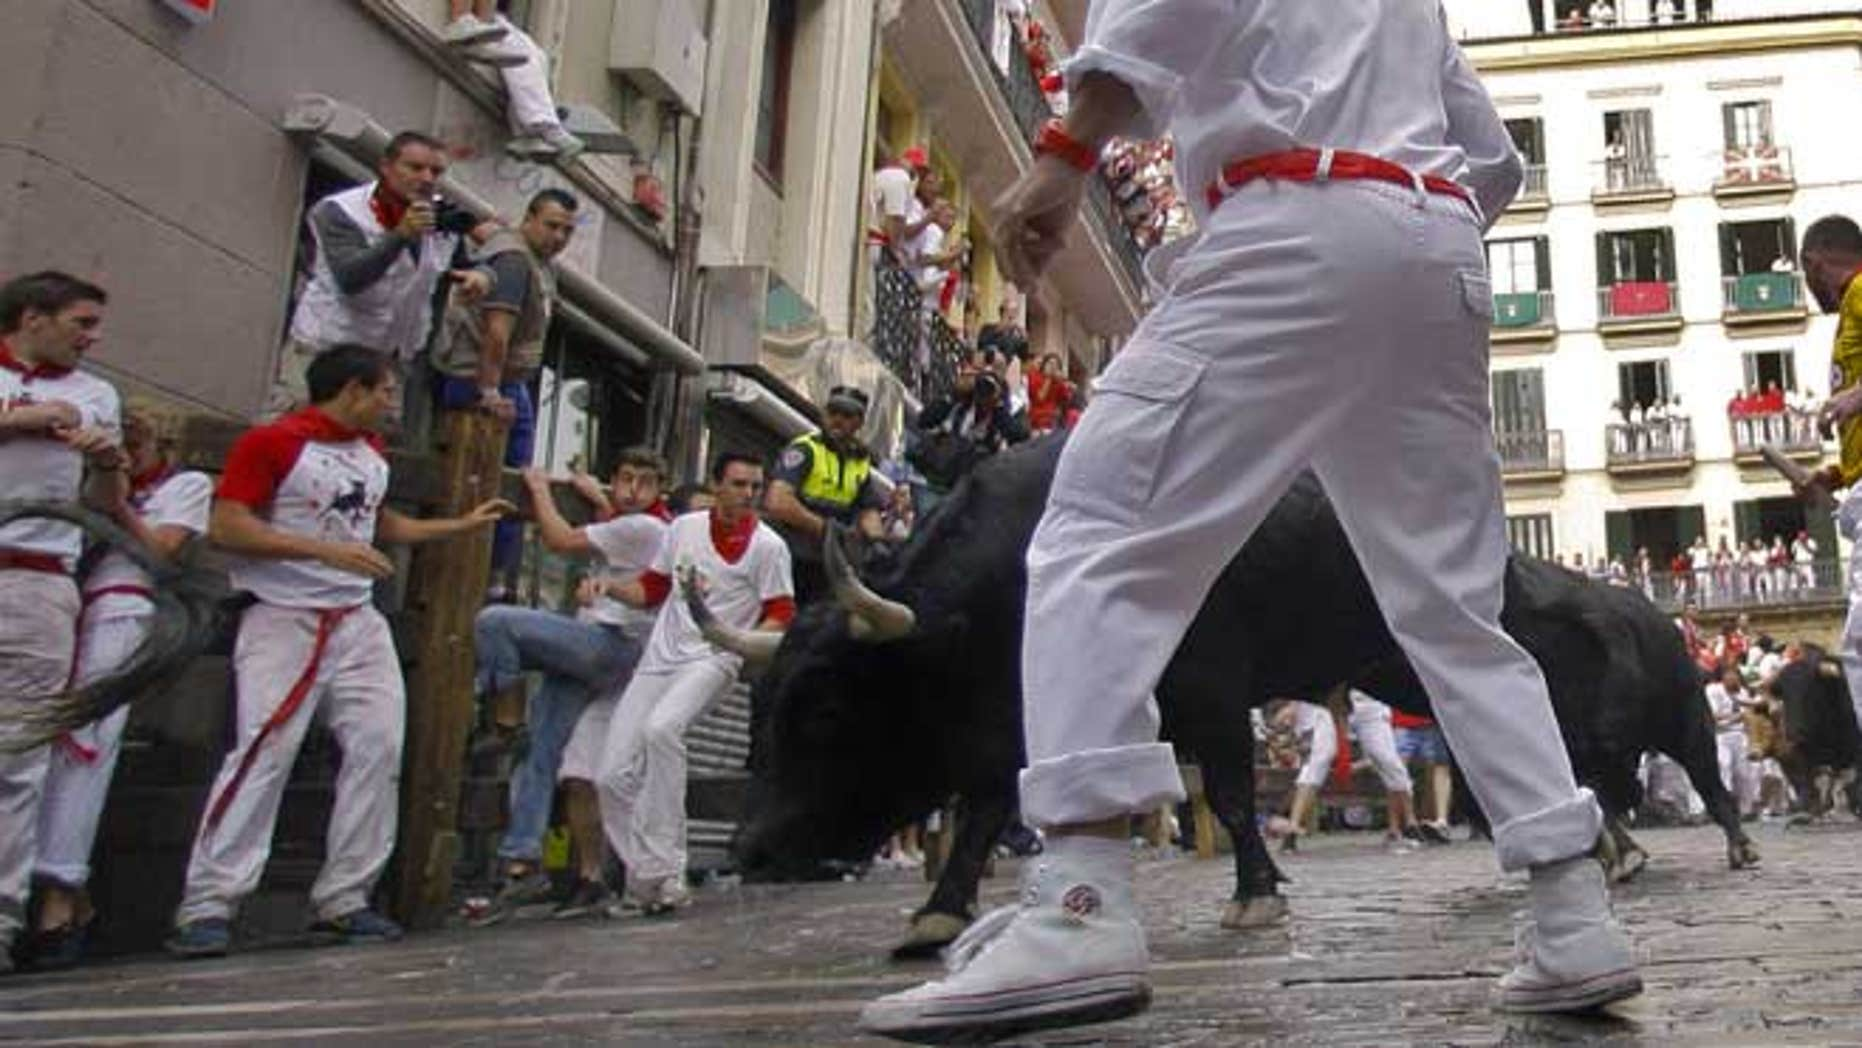 July 7, 2012: Revelers run on the Estafeta corner ahead of Dolores Aguirre Yabarra ranch bulls during the first running of the bulls at the San Fermin fiestas, in Pamplona northern Spain